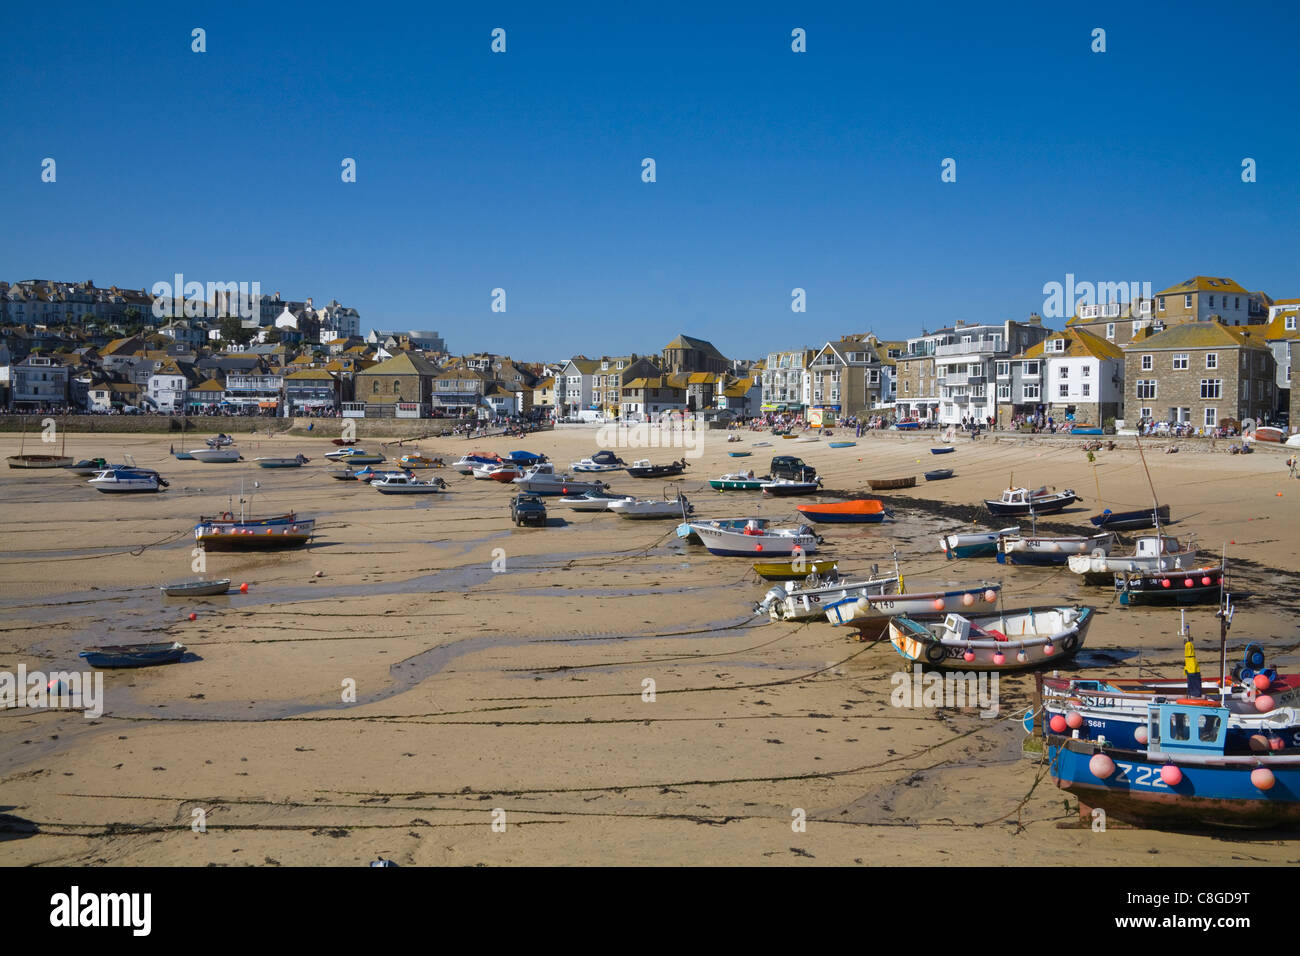 St Ives Cornwall England UK view across harbour of this busy Cornish seaside resort low tide - Stock Image